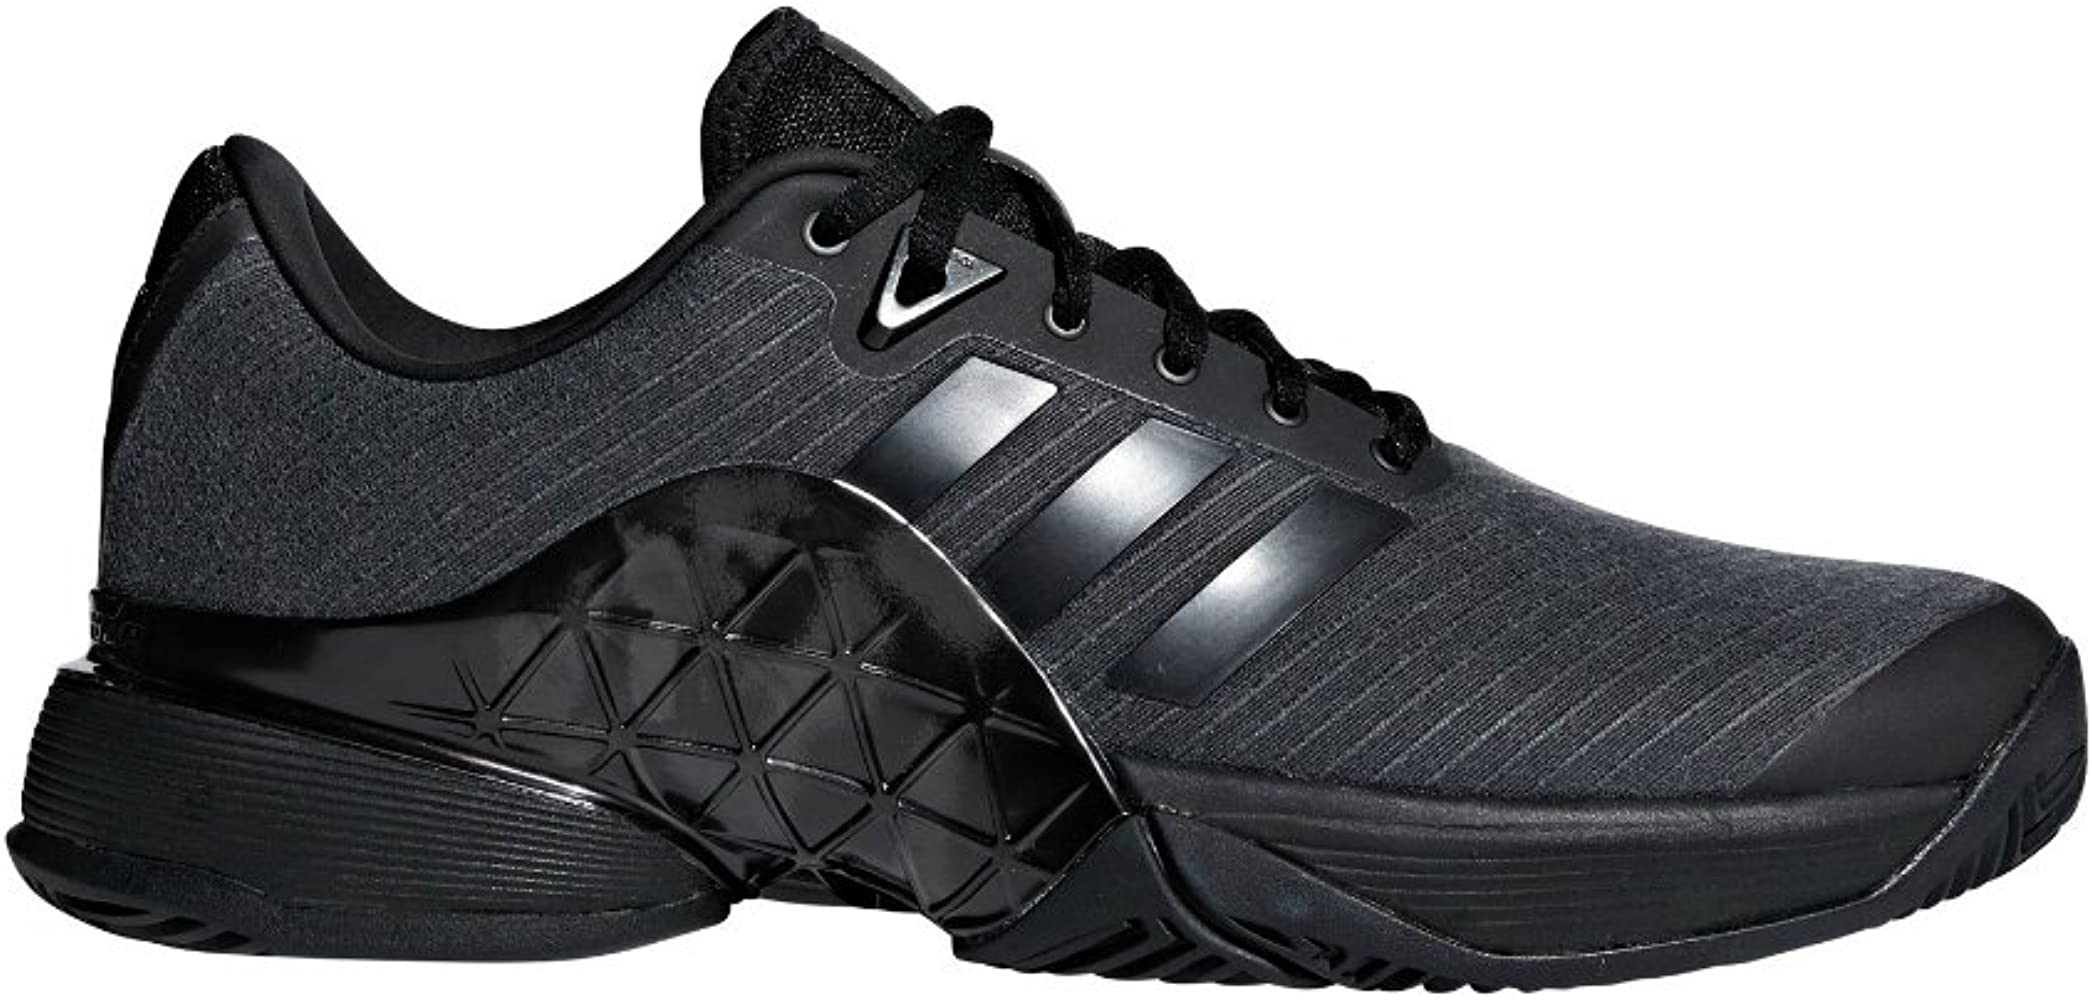 Adidas Chaussures Barricade 2018 LTD: Amazon.es: Deportes y aire libre